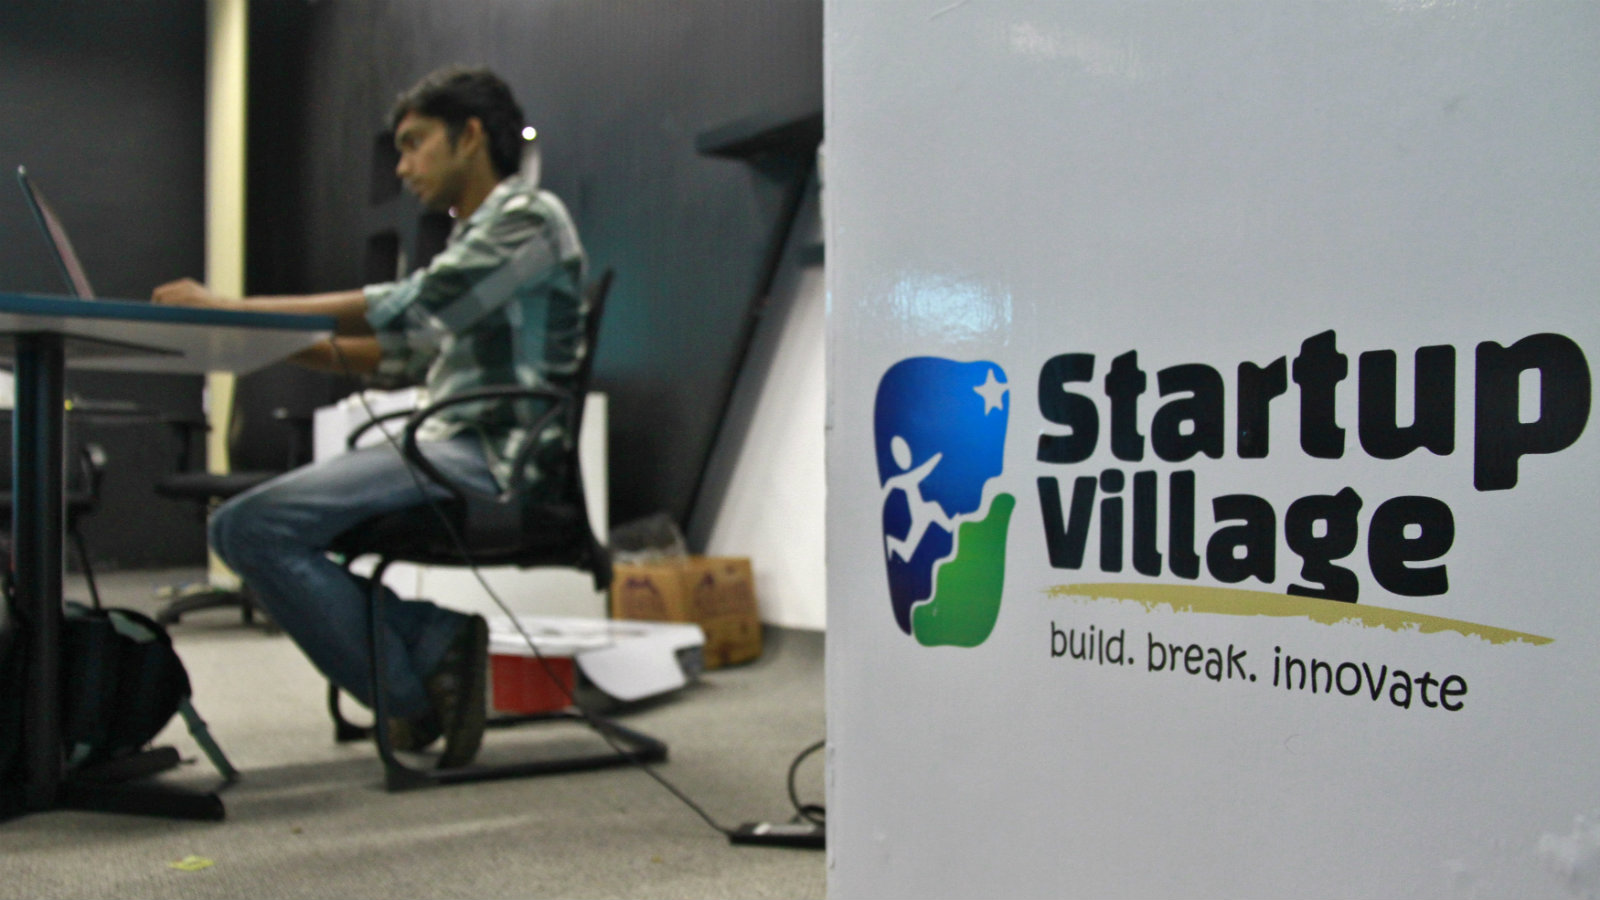 An employee works on his laptop at the Start-up Village in Kinfra High Tech Park in the southern Indian city of Kochi October 13, 2012. Three decades after Infosys, India's second-largest software service provider, was founded by middle-class engineers, the country has failed to create an enabling environment for first-generation entrepreneurs. Startup Village wants to break the logjam by helping engineers develop 1,000 Internet and mobile companies in the next 10 years. It provides its members with office space, guidance and a chance to hobnob with the stars of the tech industry. But critics say this may not even be the beginning of a game-changer unless India deals with a host of other impediments - from red tape to a lack of innovation and a dearth of investors - that are blocking entrepreneurship in Asia's third-largest economy. To match Feature INDIA-TECHVILLAGE/ Picture taken October 13, 2012.